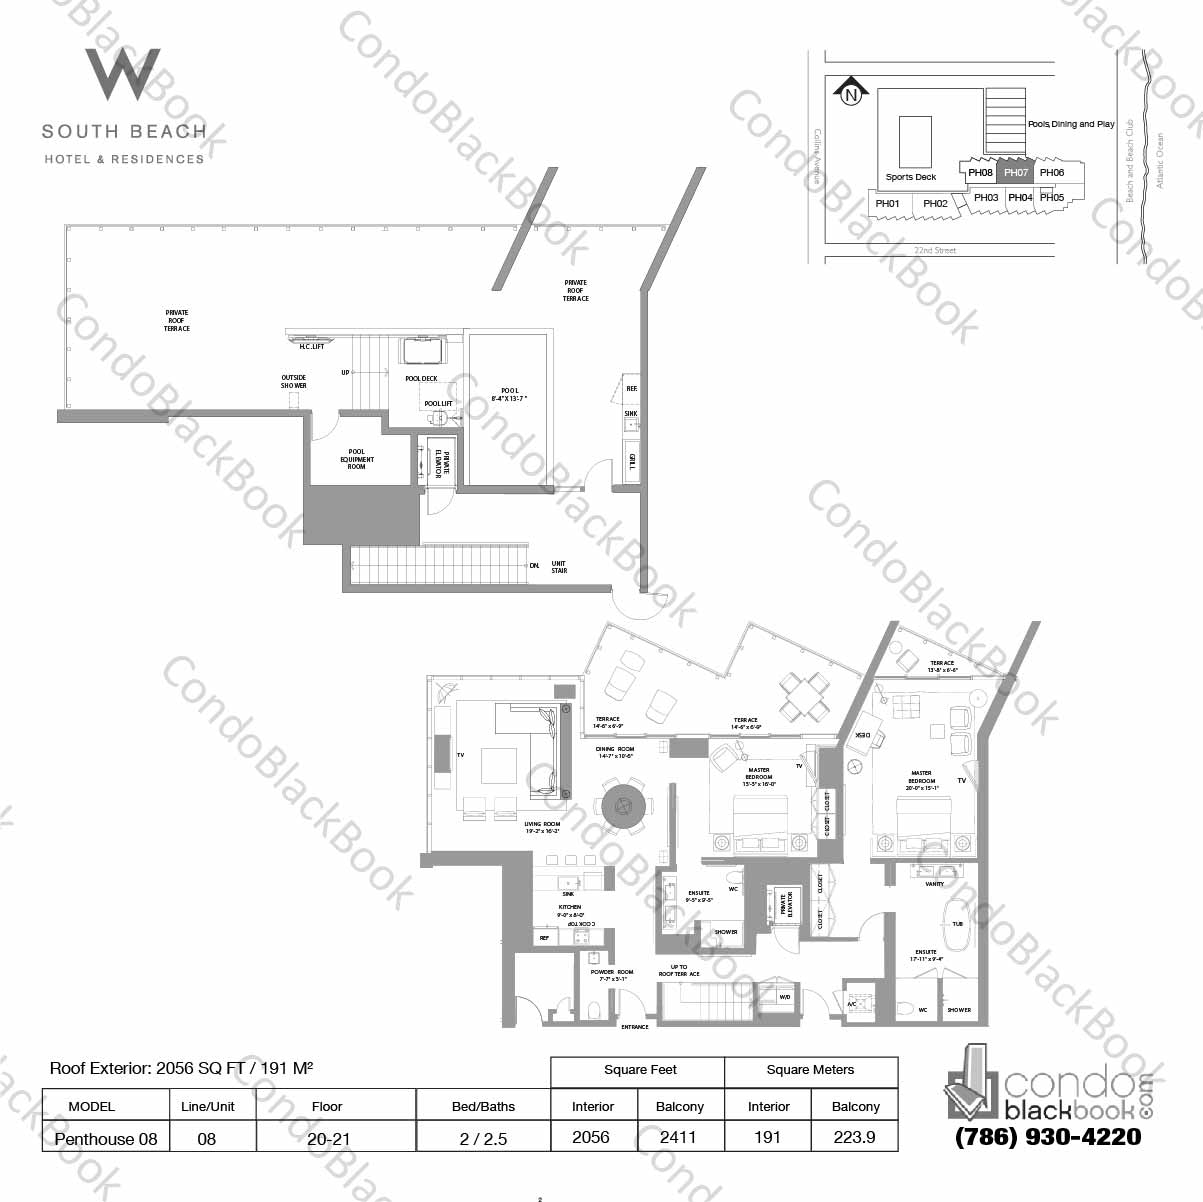 Floor plan for W South Beach South Beach Miami Beach, model Penthouse 08, line 08, 2 / 2.5 bedrooms, 2056 sq ft